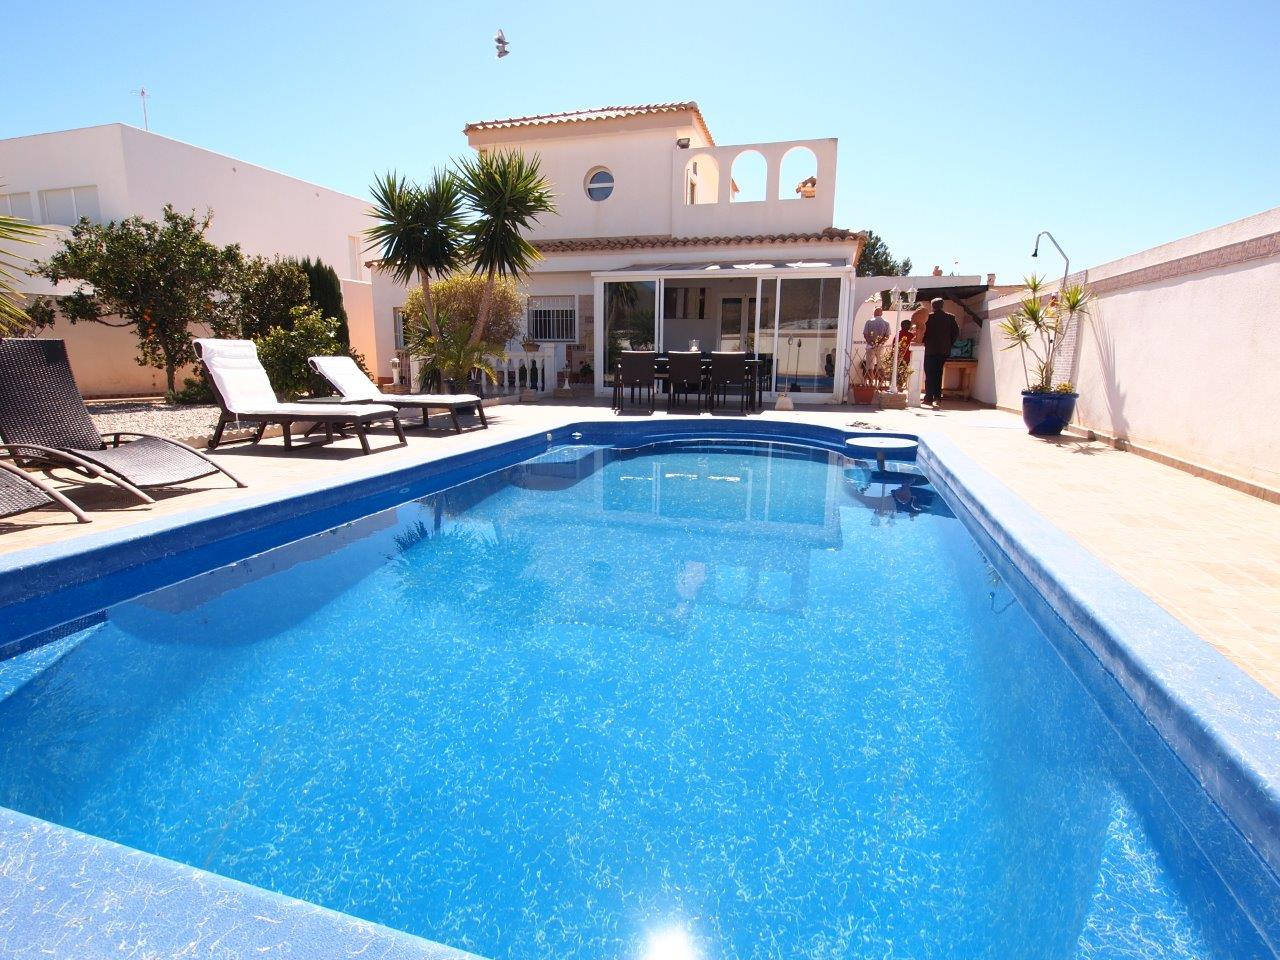 047. SUPER VILLA 3BED – 600M2 PLOT – VERY CONDITIONED WITH POOL, JACUZZI, SOLARIUM, GARDEN,TERRACE, BBQ…10 MINUTES ONLY FROM THE SEA – SAN GINES